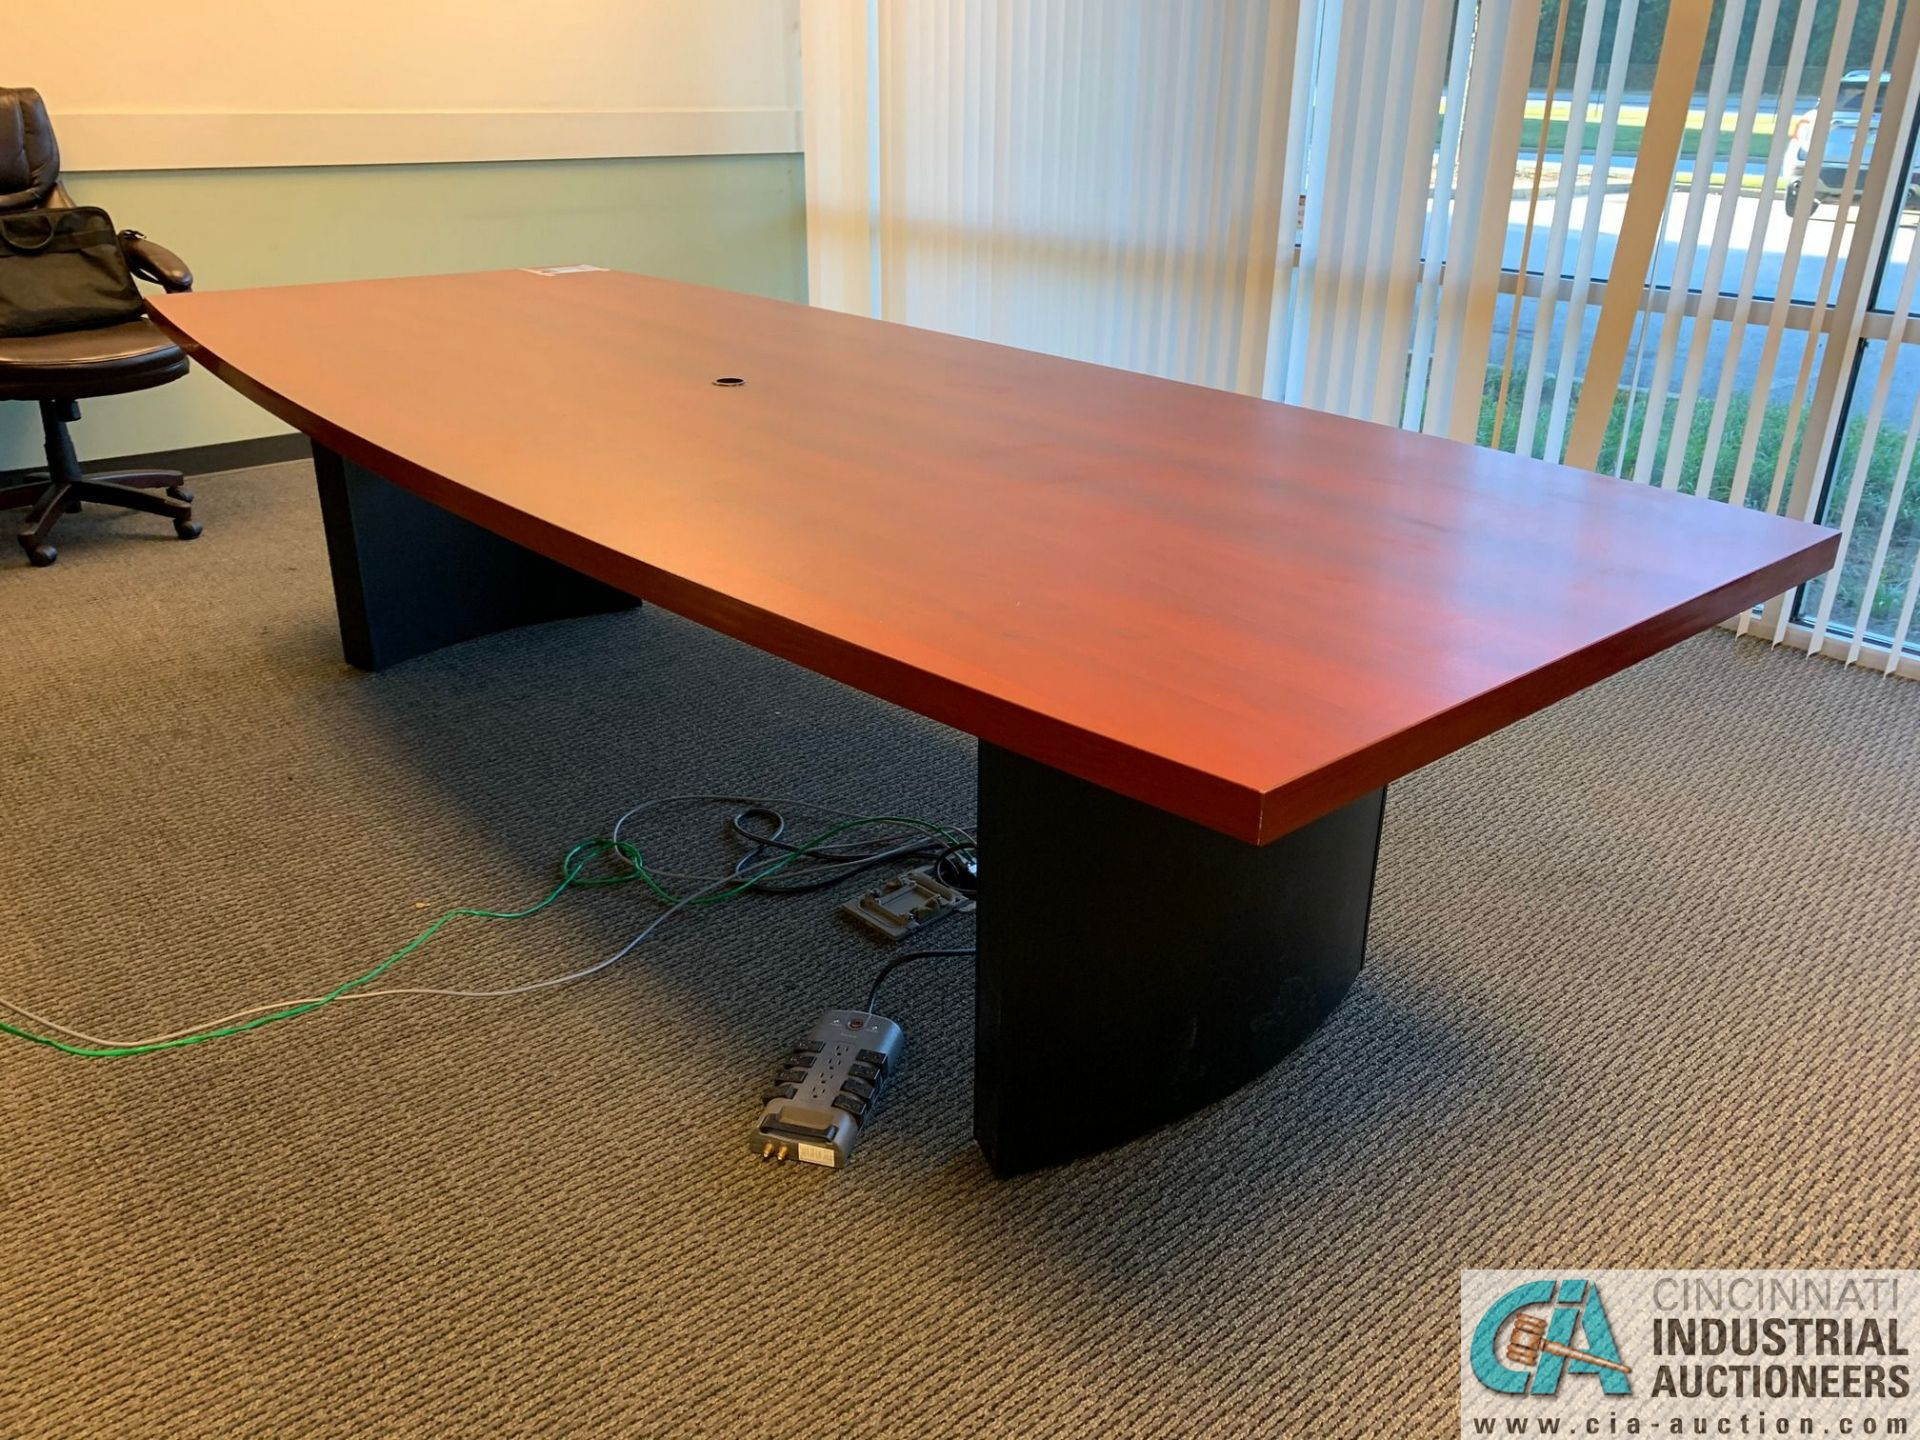 10' X 4' EXECUTIVE CONFERENCE TABLE (NO CHAIRS) (5400 OAKLEY INDUSTRIAL BLVD., FAIRBURN, GA 30213) - Image 4 of 4